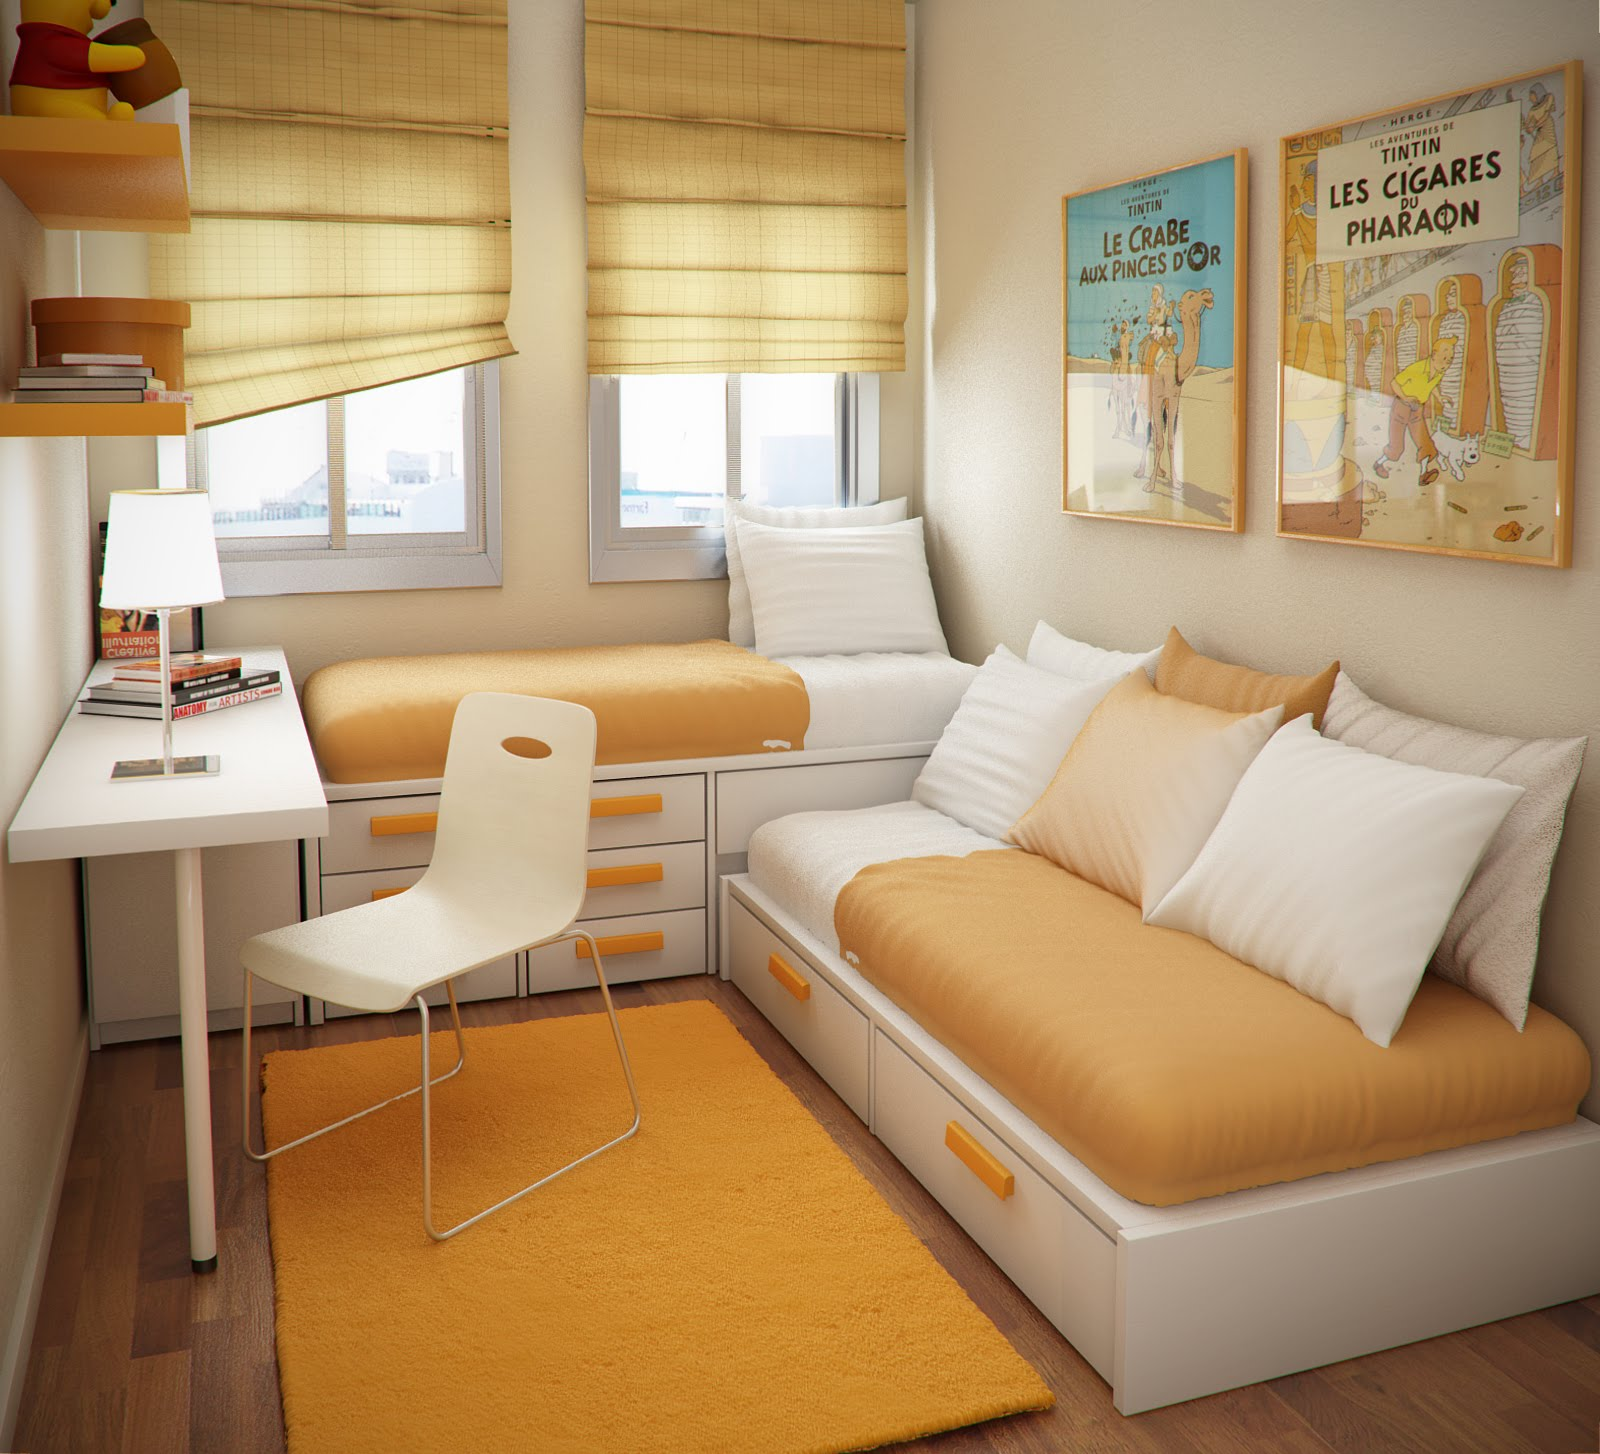 Design ideas small floorspace kids rooms fresh orange for Kids bedrooms interior designs